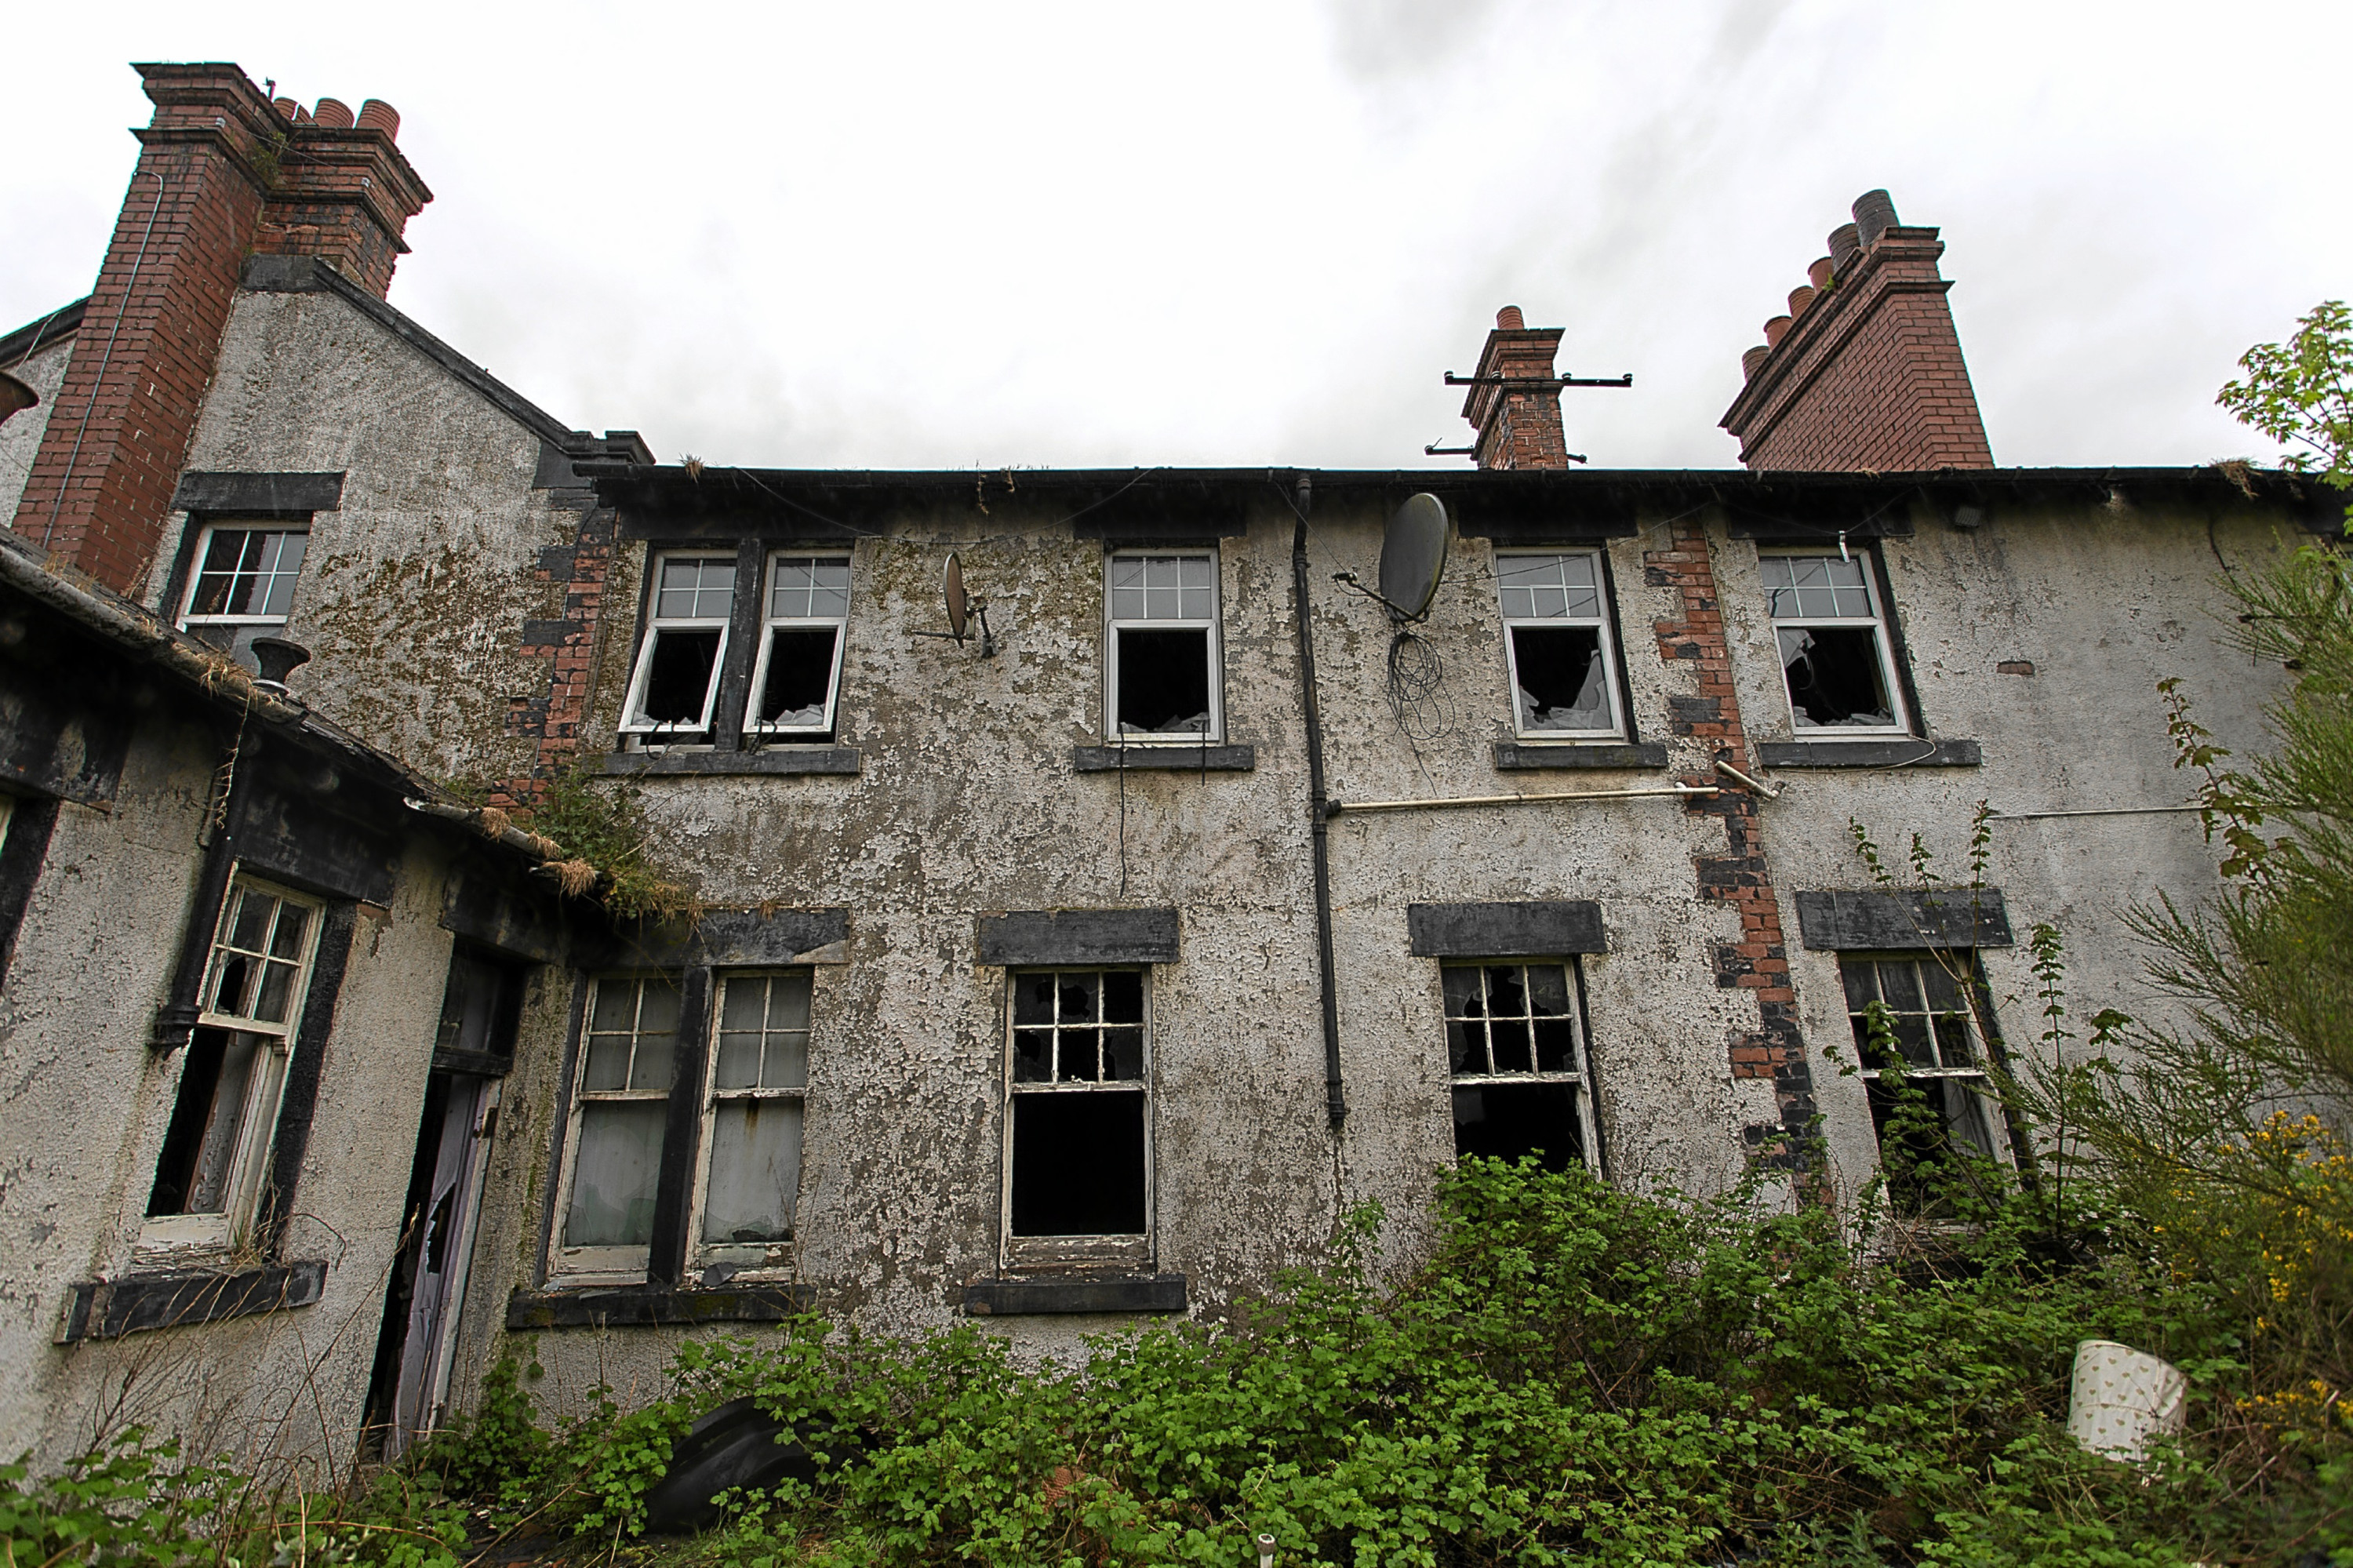 The building is in a dangerous state of decay after a fire ravaged the once successful hotel.